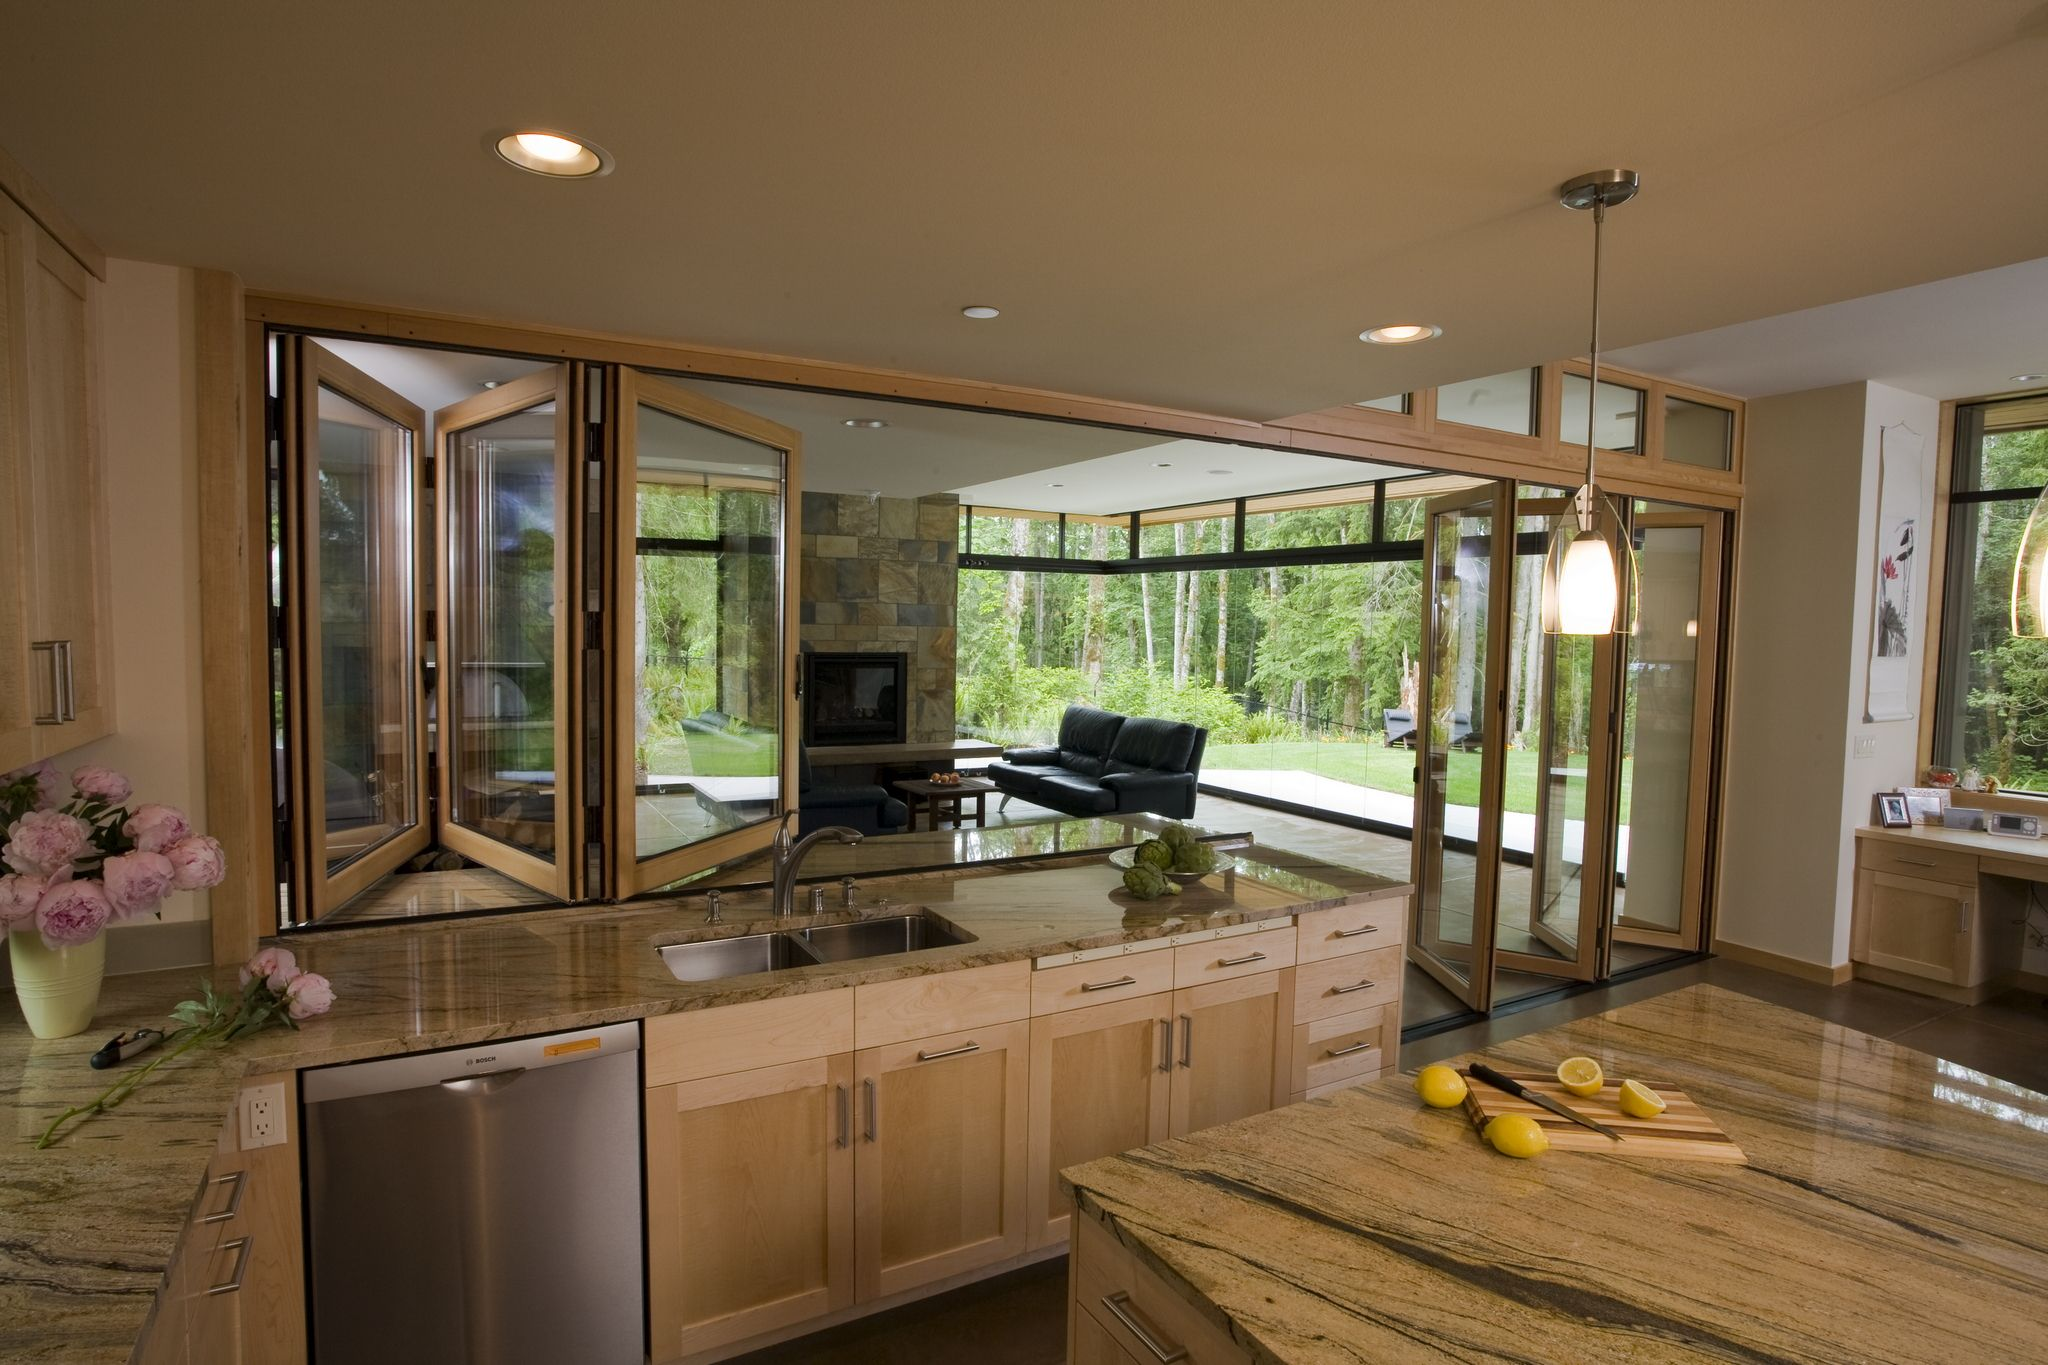 Kitchen Opens To A 4 Season Outdoor Room Home Outdoor Kitchen Design Outdoor Kitchen Appliances